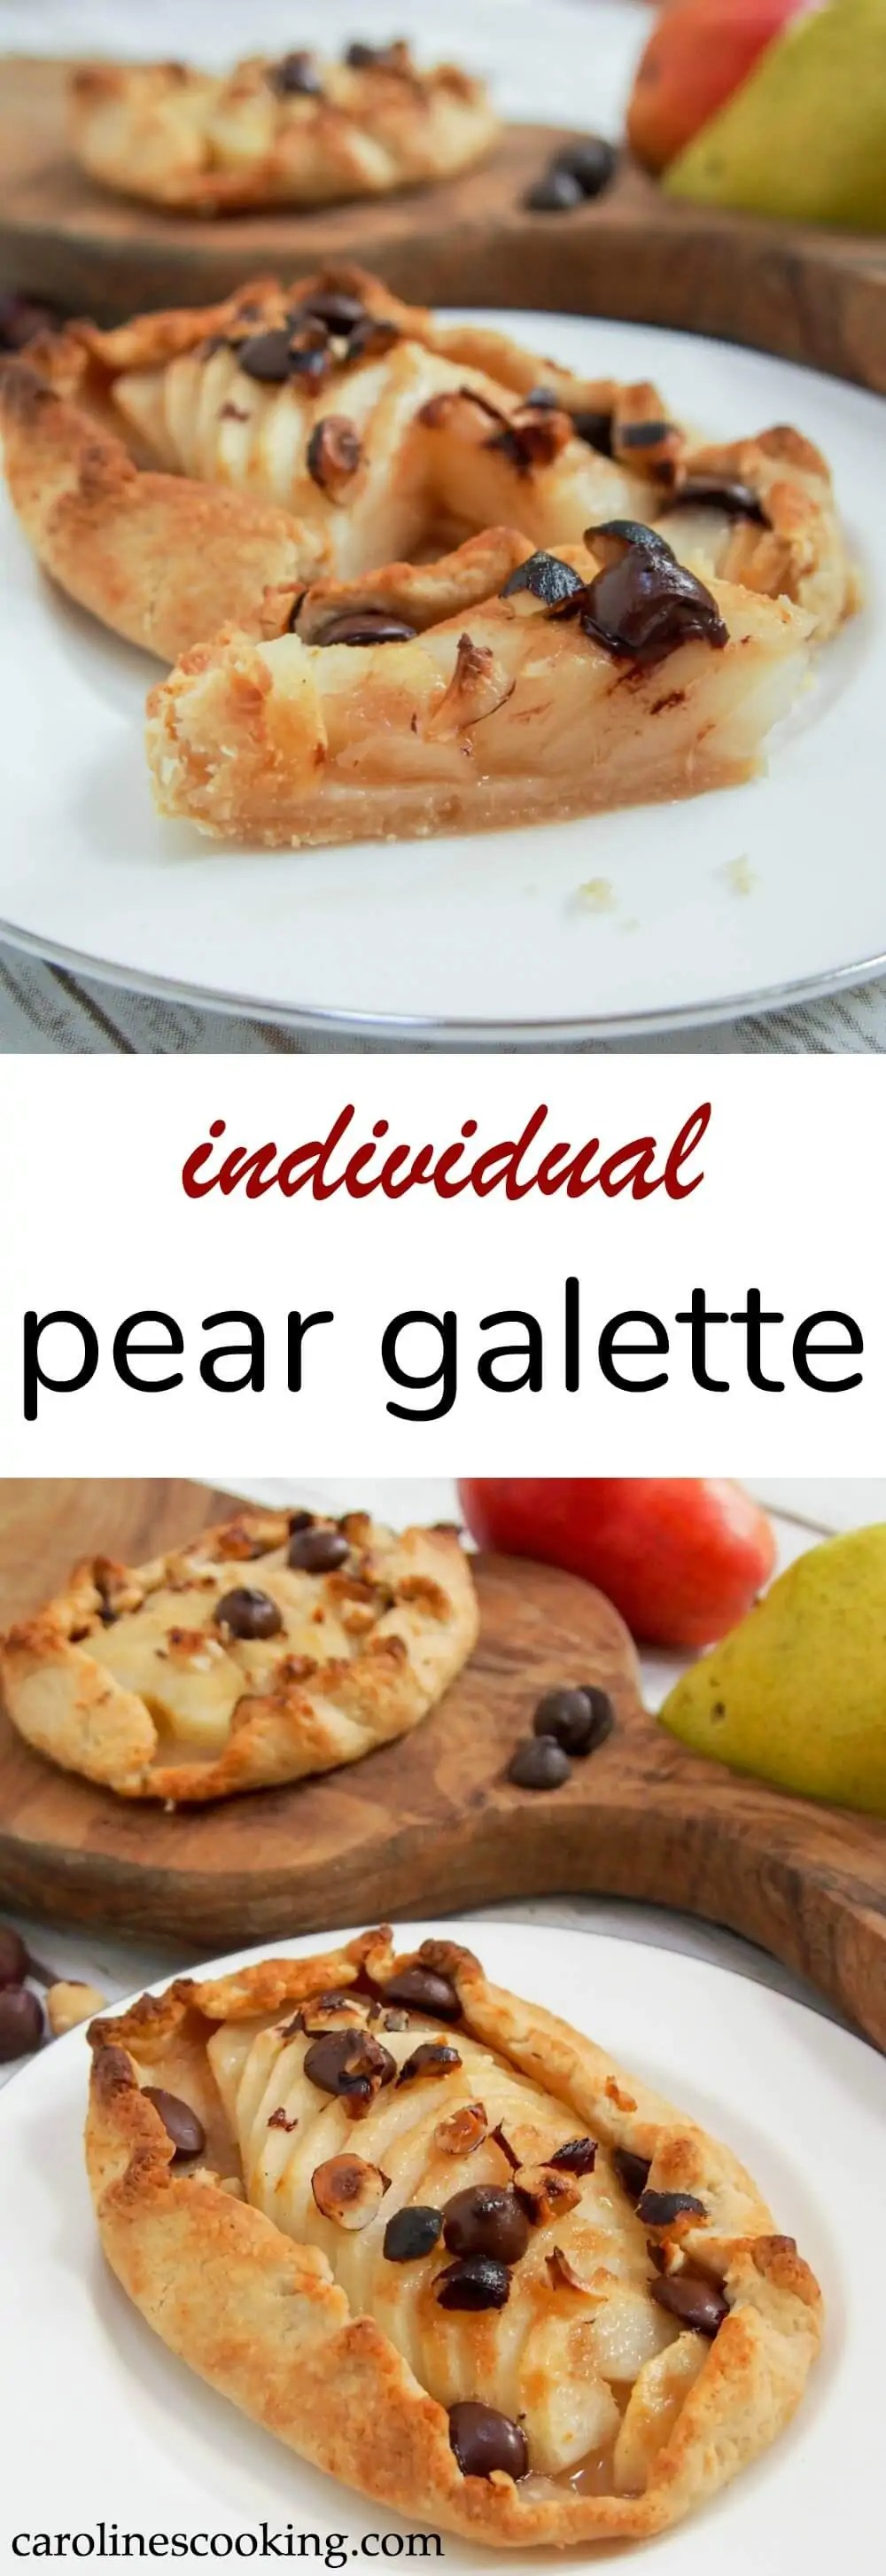 This individual pear galette is easy to make and a delicious combination of sweet pear and lightly crisp pastry. It's a dessert that's as good as it looks. #pear #galette #tart